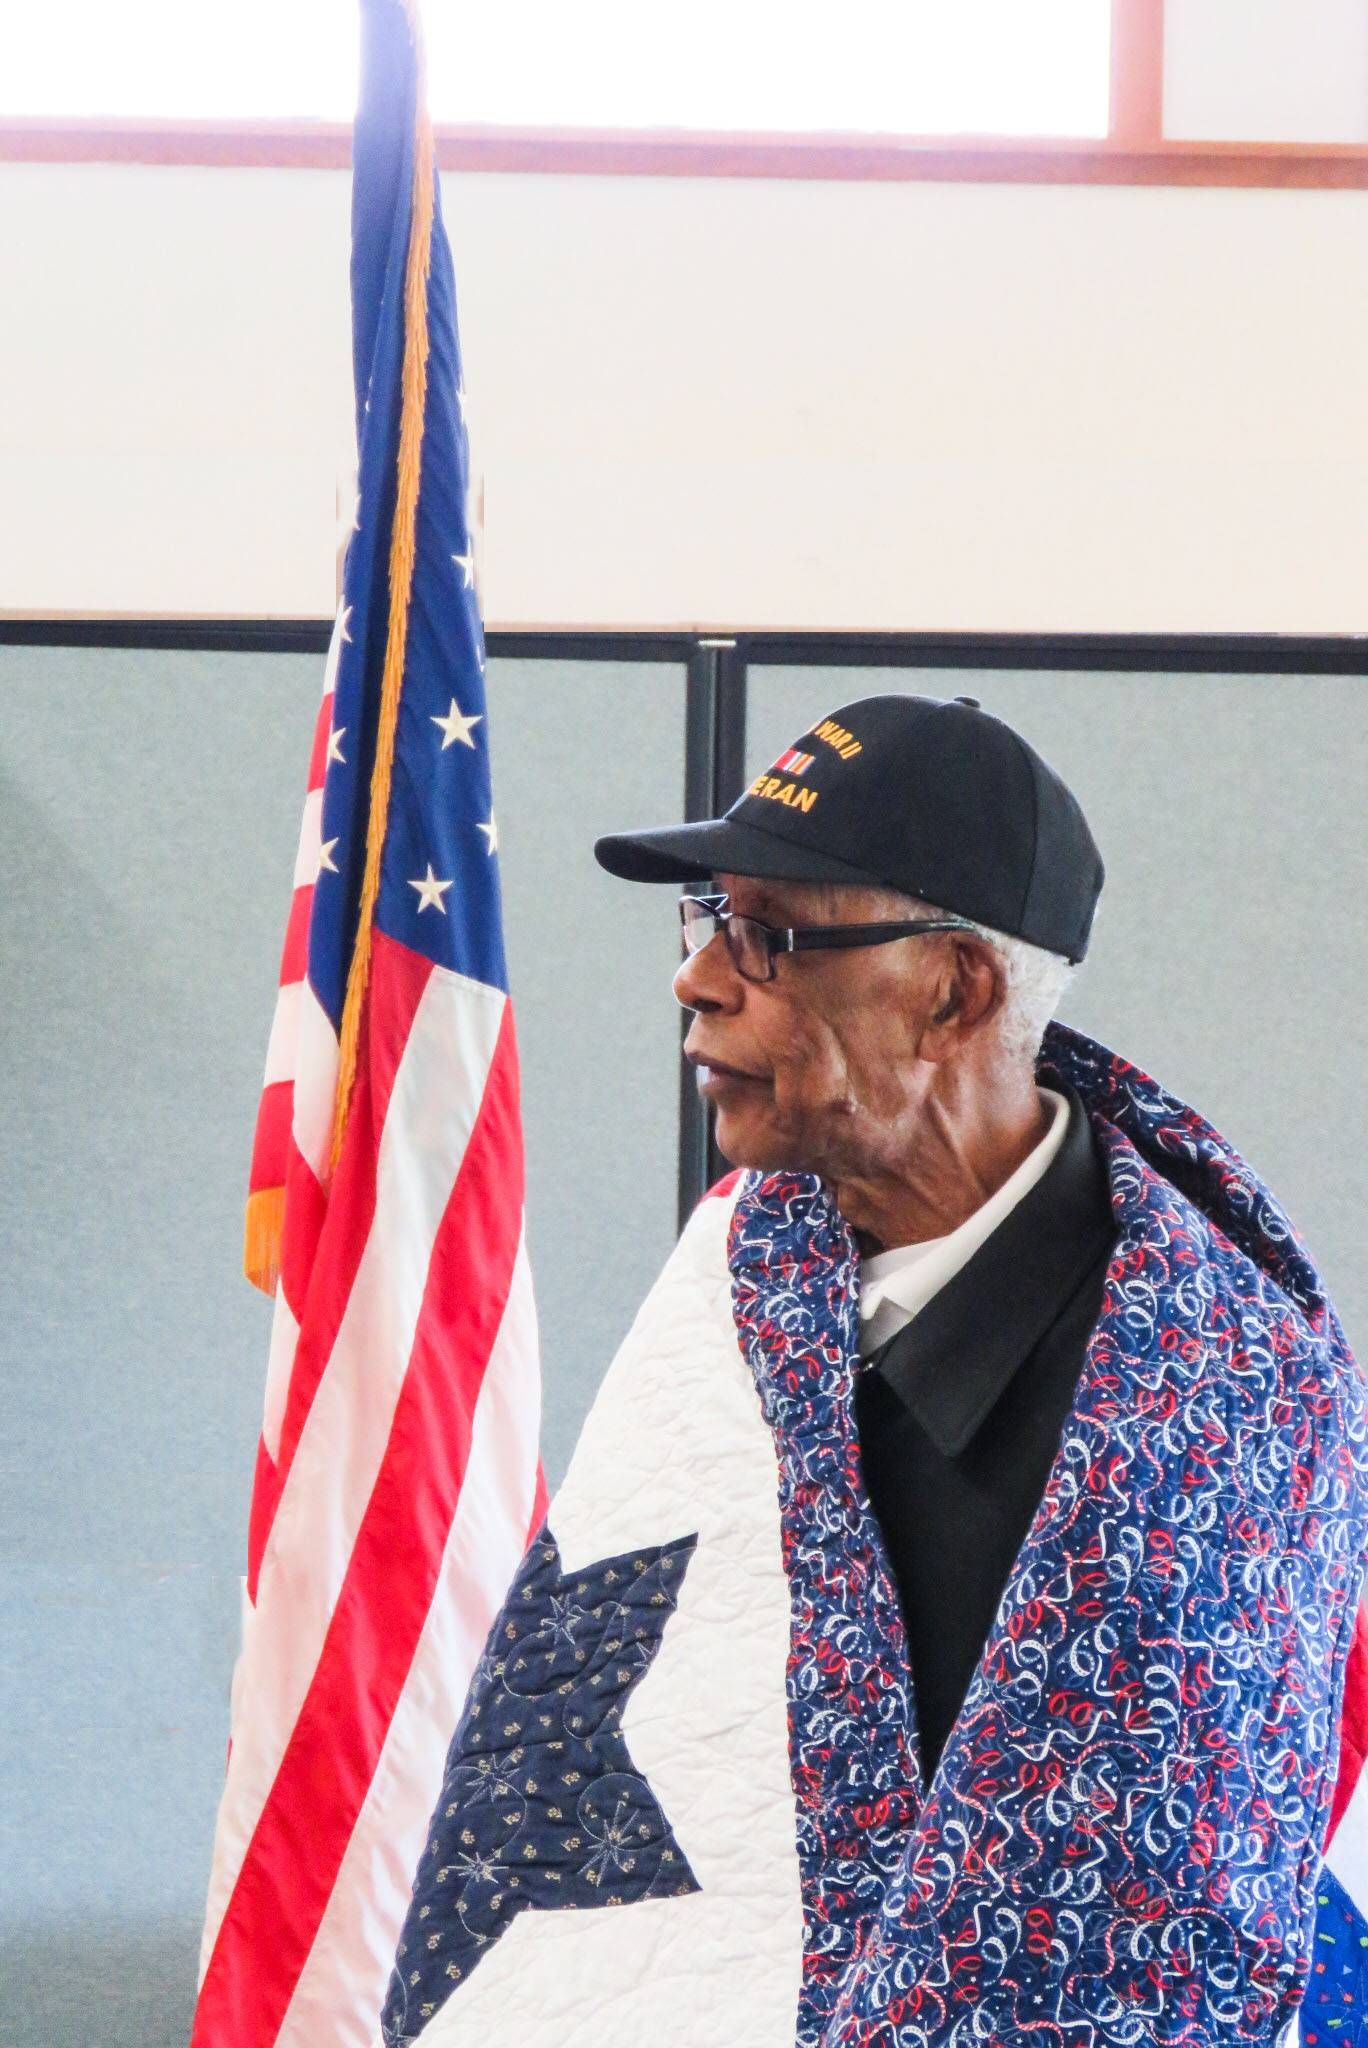 World War II veteran Melvin Copeland, 94, of Elgin, a World War II veteran, received his Quilt of Valor during a brief ceremony in August. The quilts are made by volunteers at Christ the Lord Lutheran Church in Elgin, who meet once a month.